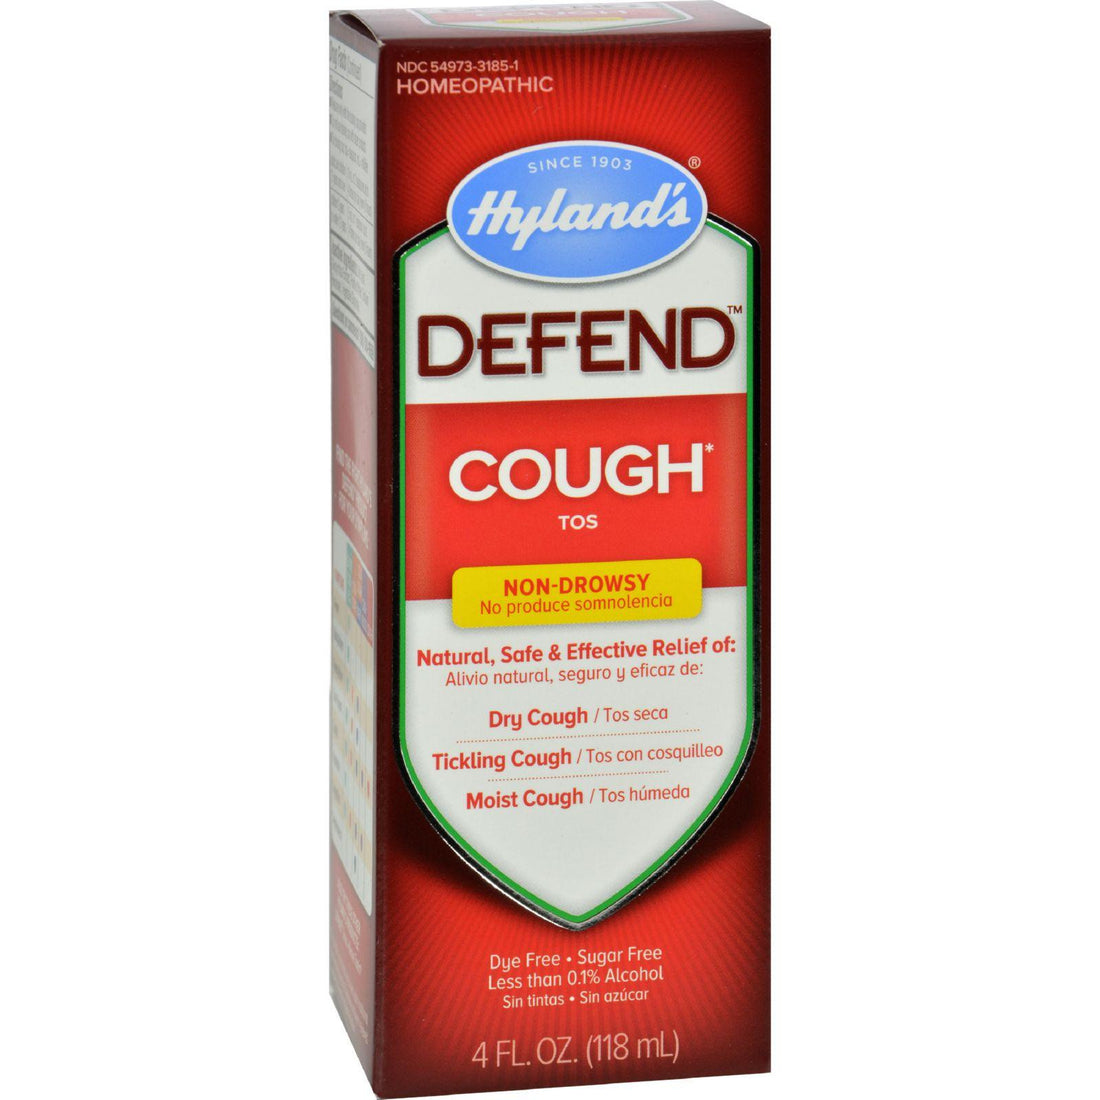 Mother Mantis: Hylands Homepathic Cough Syrup - Defend - 4 Fl Oz Hyland's